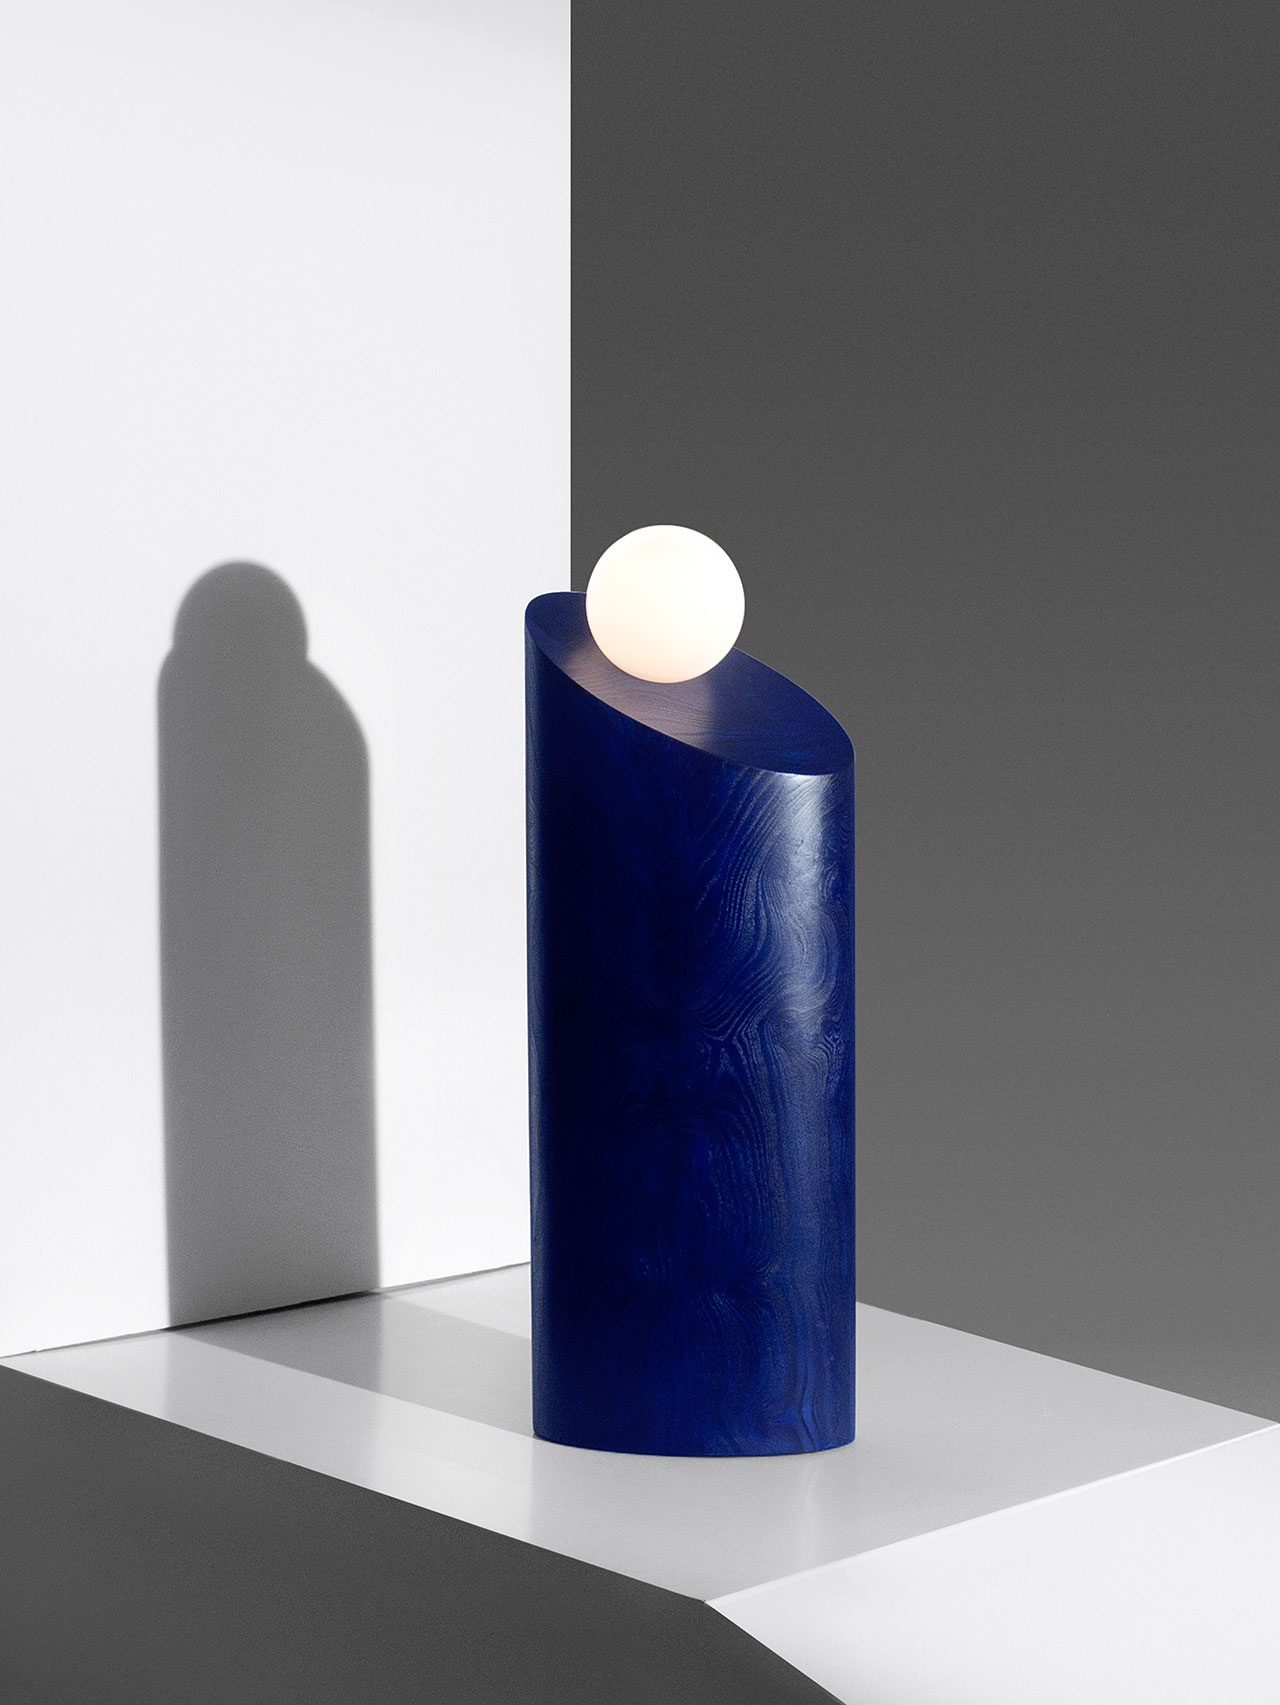 Stunning Sculpture Lighting Objects by London-based Child Studio 1 sculpture lighting Stunning Sculpture Lighting Objects by London-based Child Studio Stunning Sculpture Lighting Objects by London based Child Studio 6